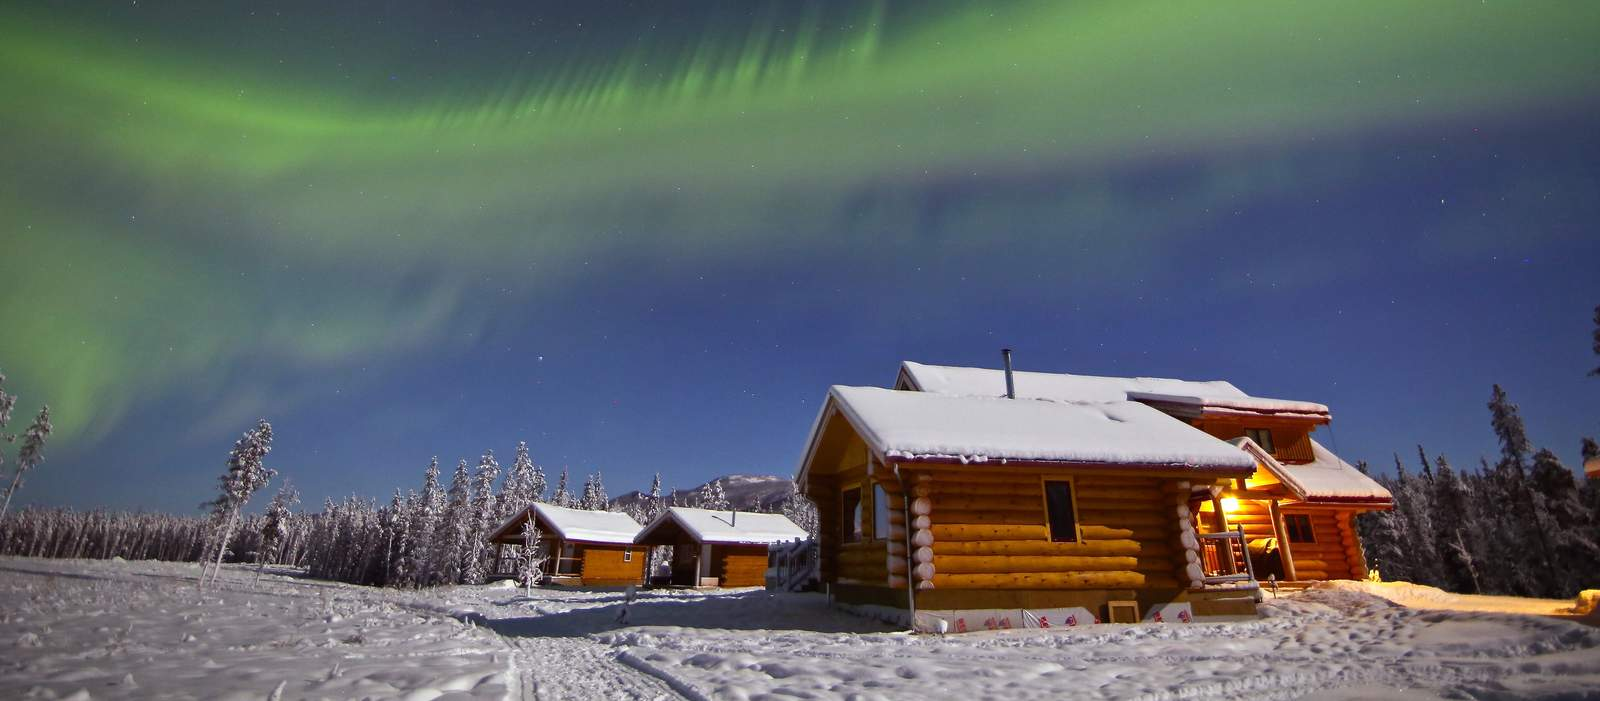 NWT Winter-Promo Yukon, Northern Lights Resort & Spa, Nordlichter über der Lodge